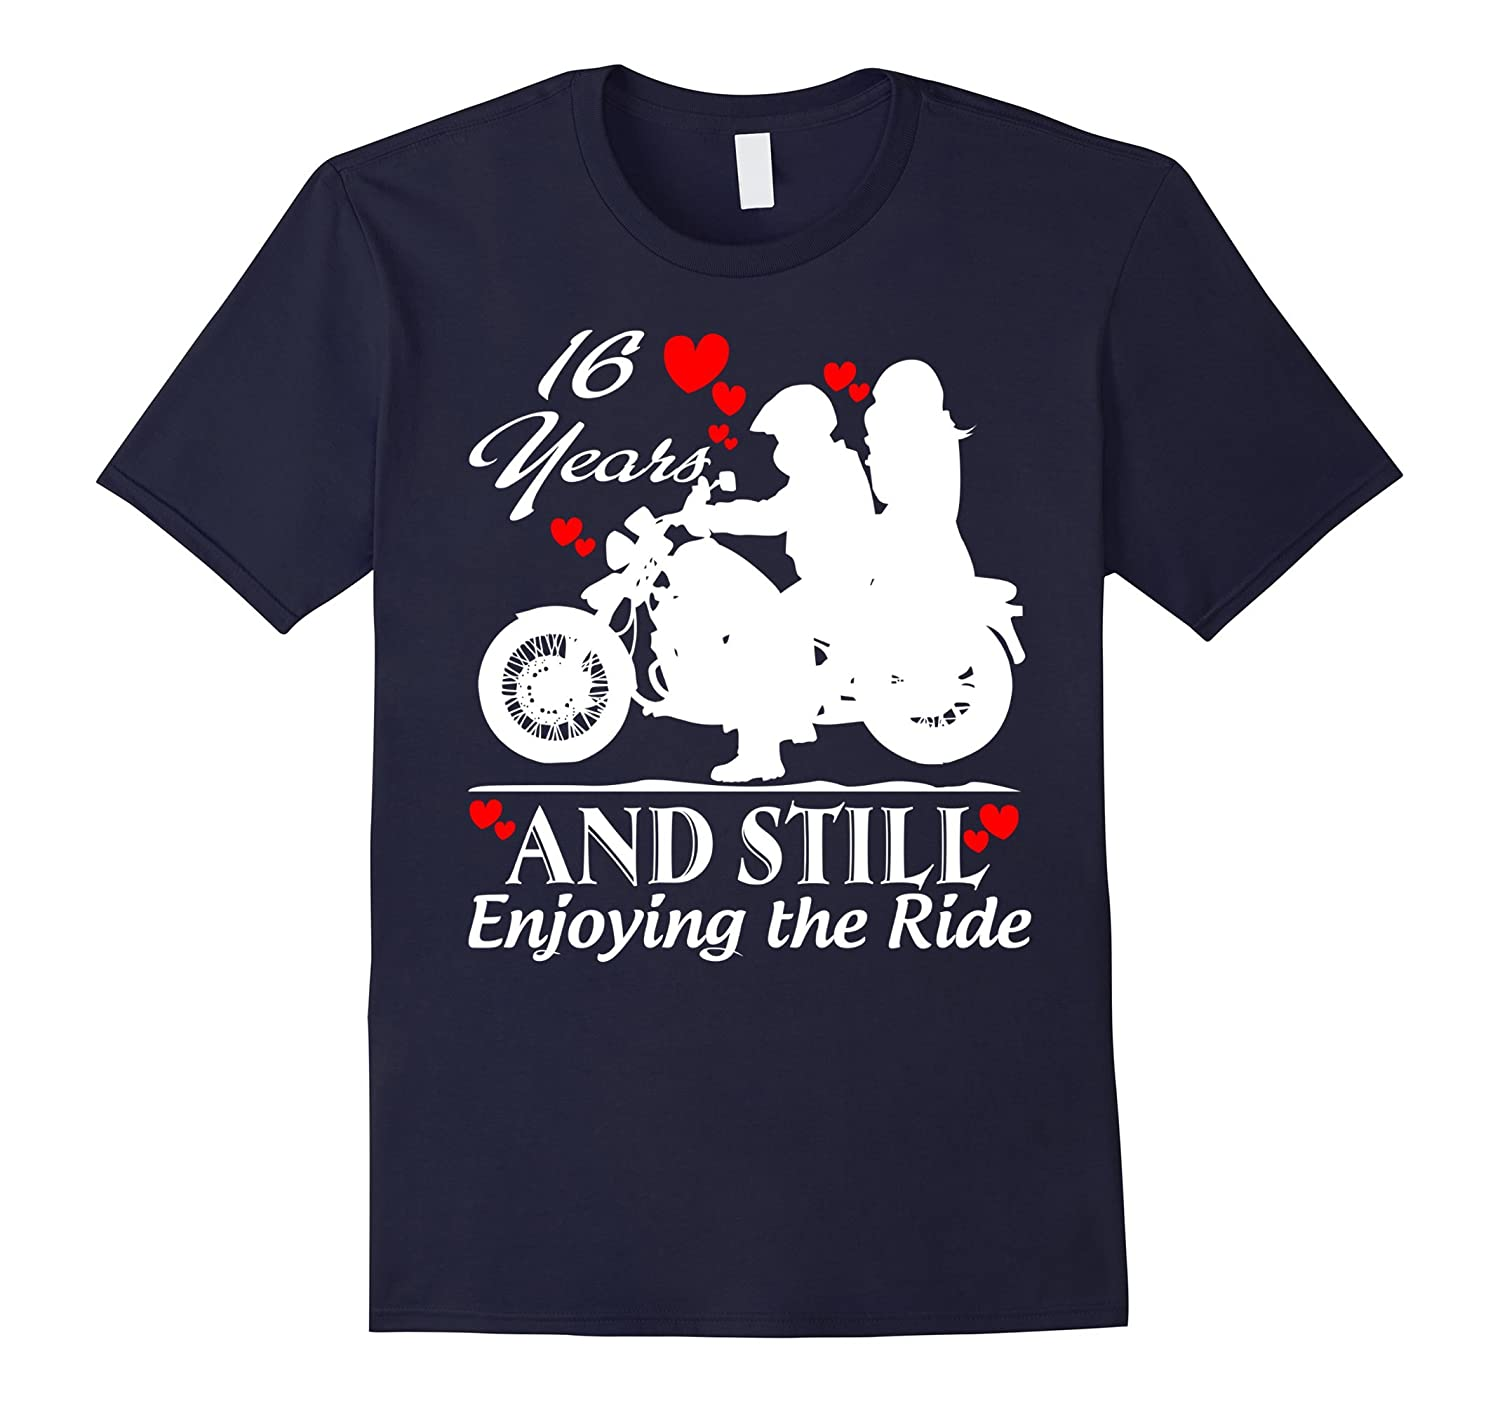 What Is The 16th Wedding Anniversary Gift: 16th Wedding Anniversary Gifts Shirt